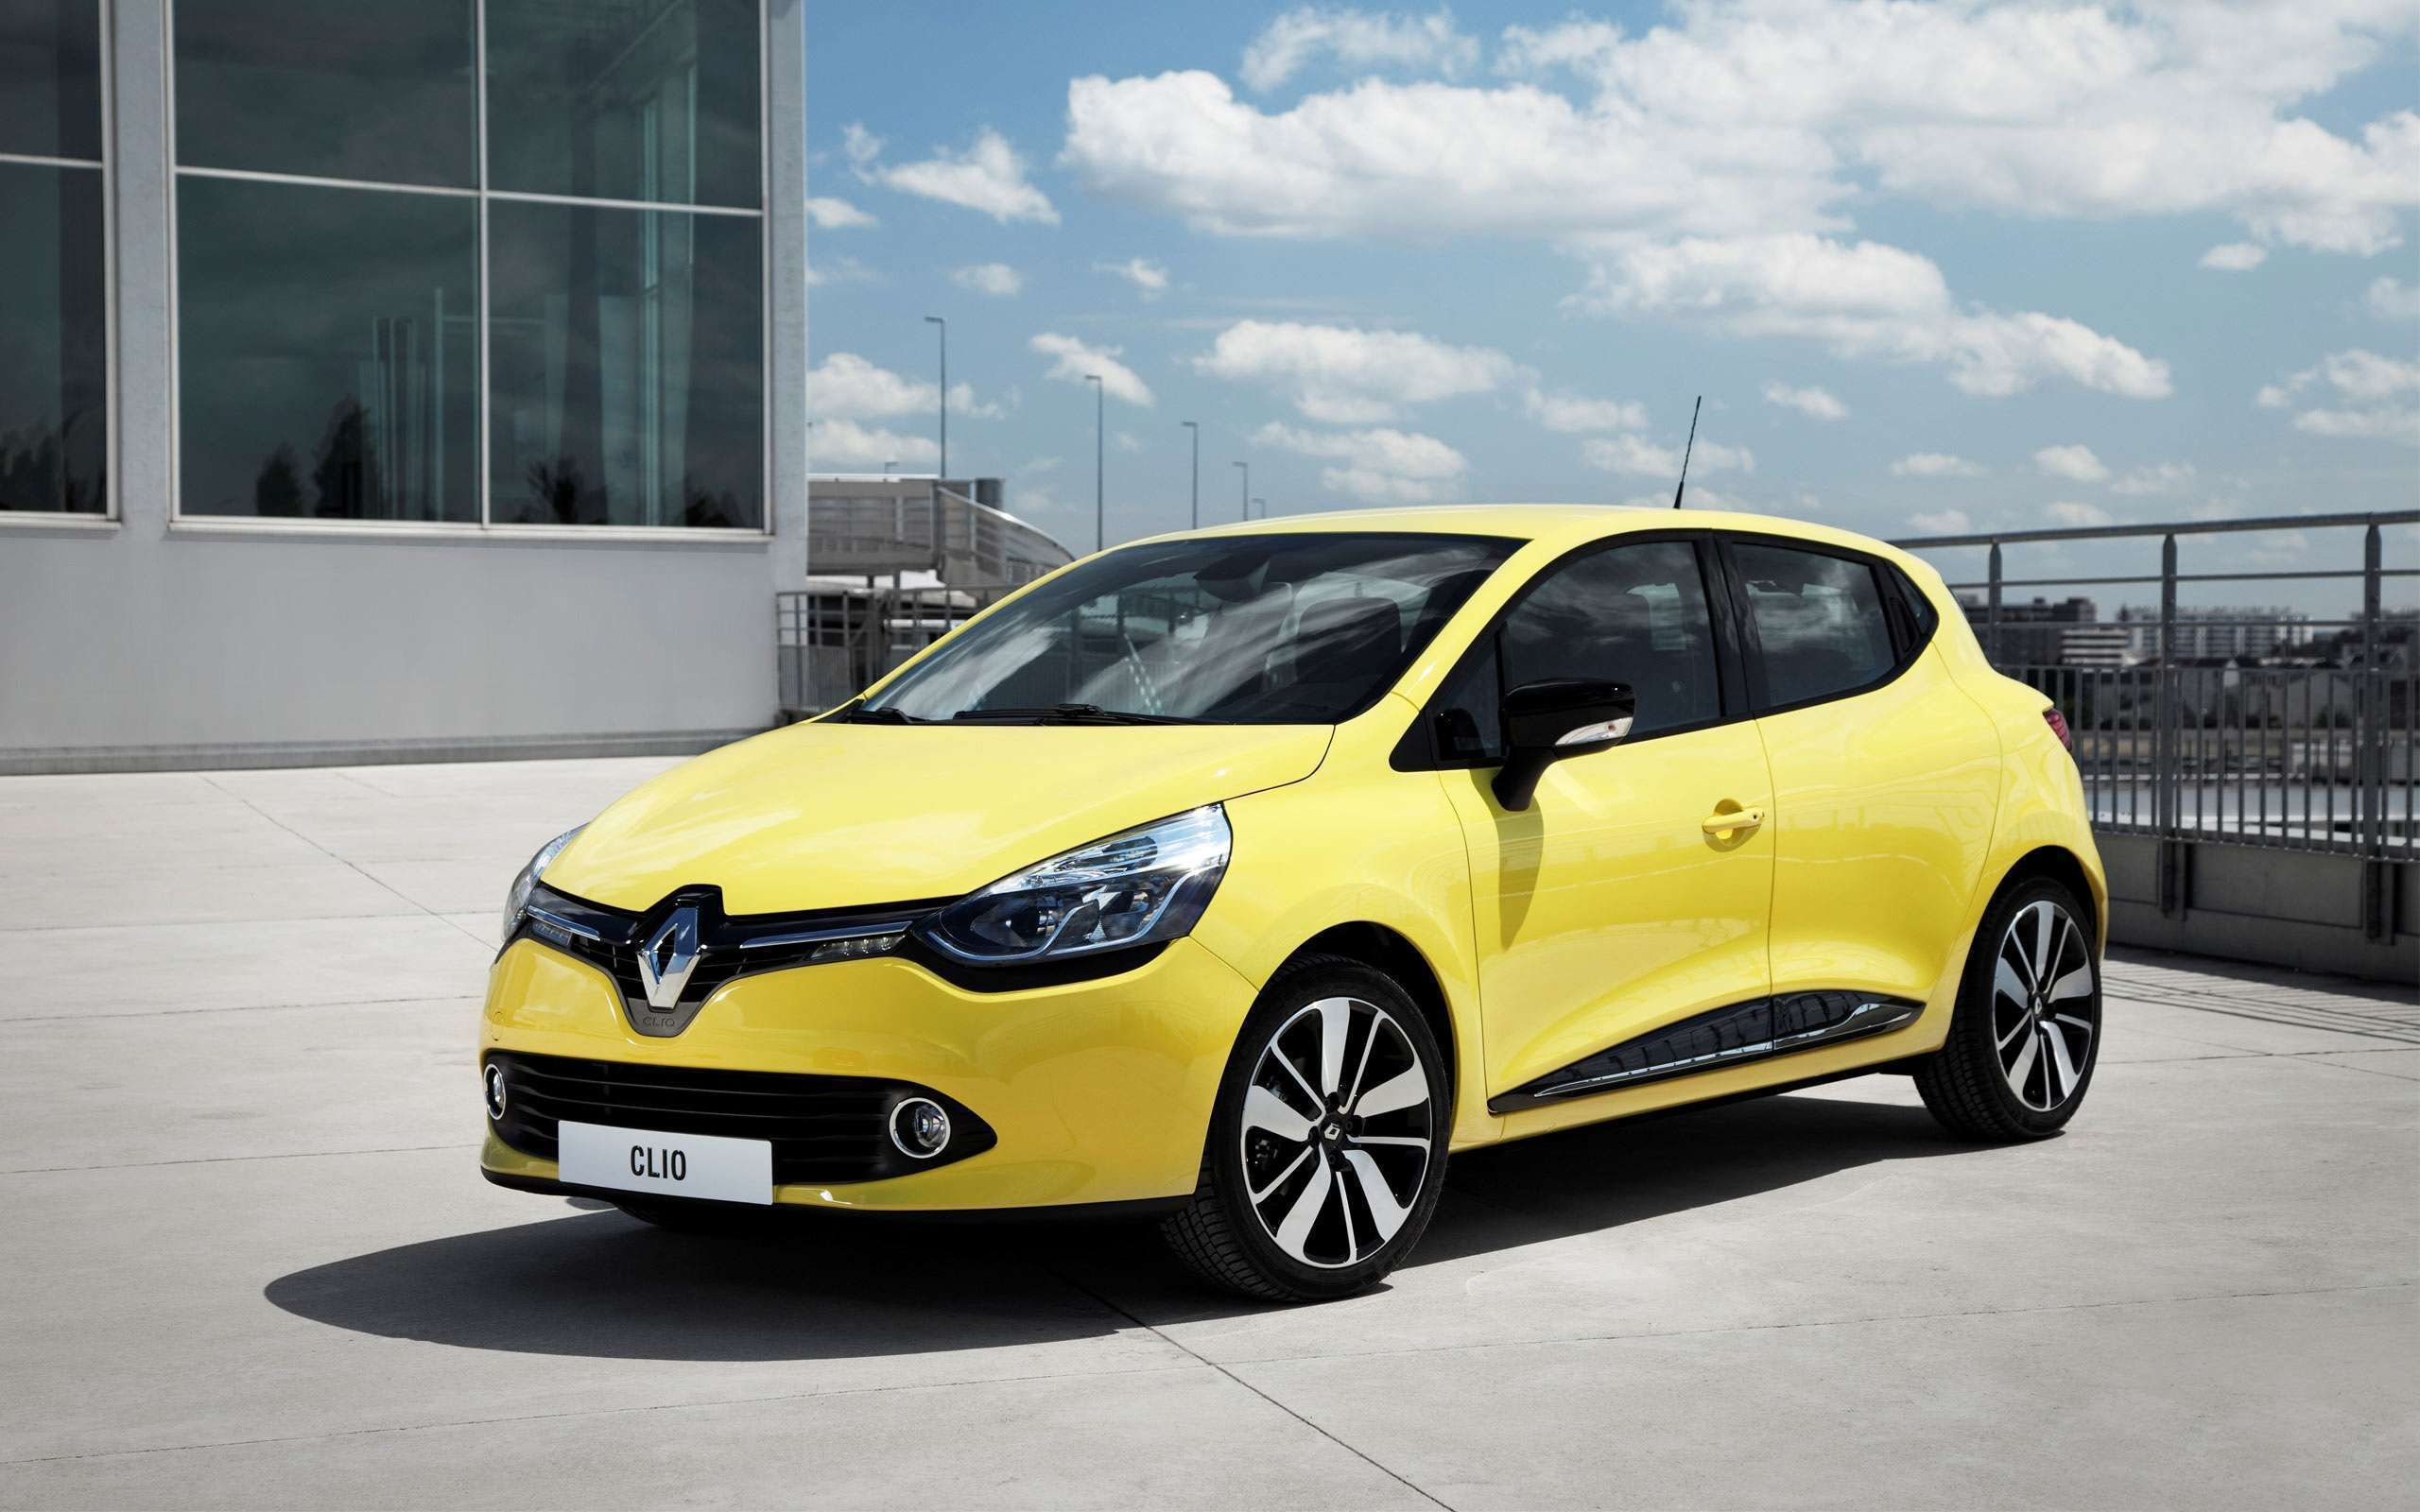 Click here to download in hd format 2013 renault clio 2 hd wallpapers https www hdcarwallpapers in wallpaper 2013 renault clio 2 hd w pinteres